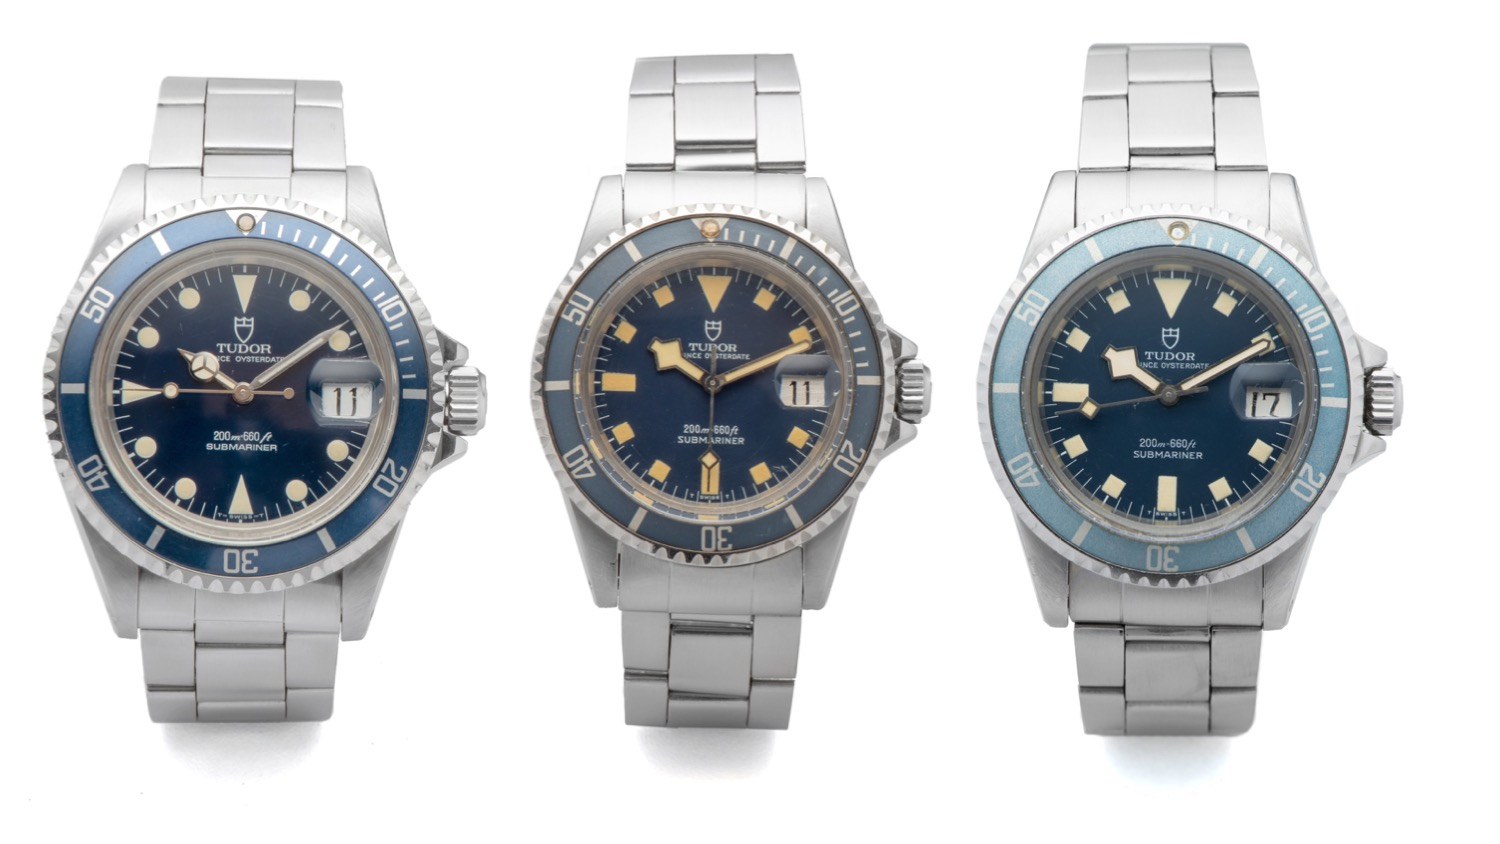 Tudor Submariners Reference 79090, 94110, and 9411/0